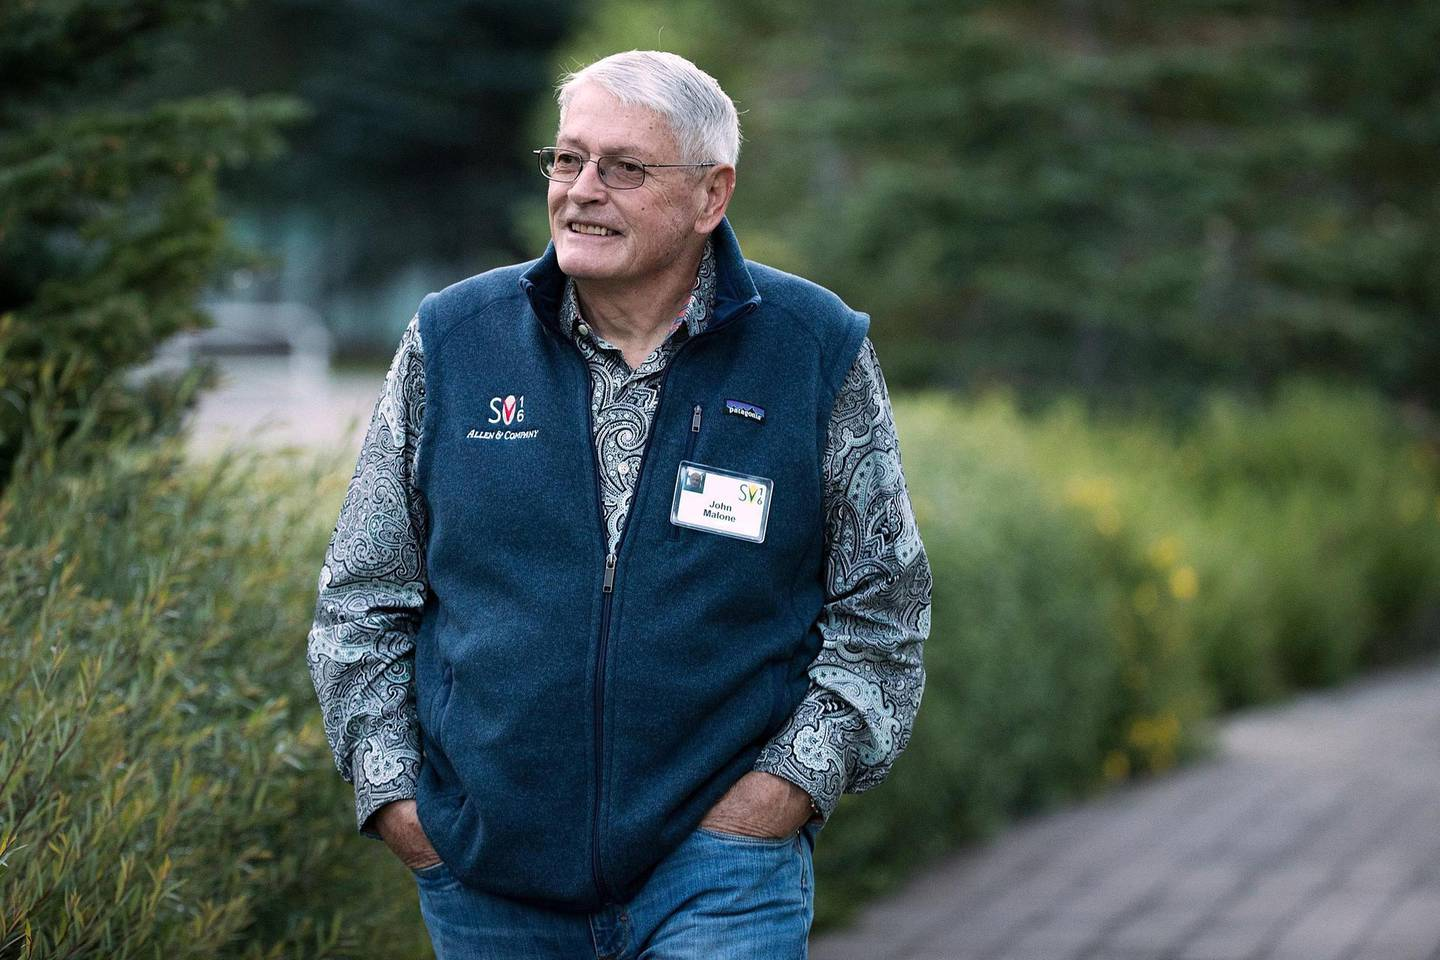 SUN VALLEY, ID - JULY 7: John Malone, businessman and former chief executive of Tele-Communications Inc., attends the annual Allen & Company Sun Valley Conference, July 7, 2016 in Sun Valley, Idaho. Every July, some of the world's most wealthy and powerful businesspeople from the media, finance, technology and political spheres converge at the Sun Valley Resort for the exclusive weeklong conference.   Drew Angerer/Getty Images/AFP (Photo by Drew Angerer / GETTY IMAGES NORTH AMERICA / Getty Images via AFP)